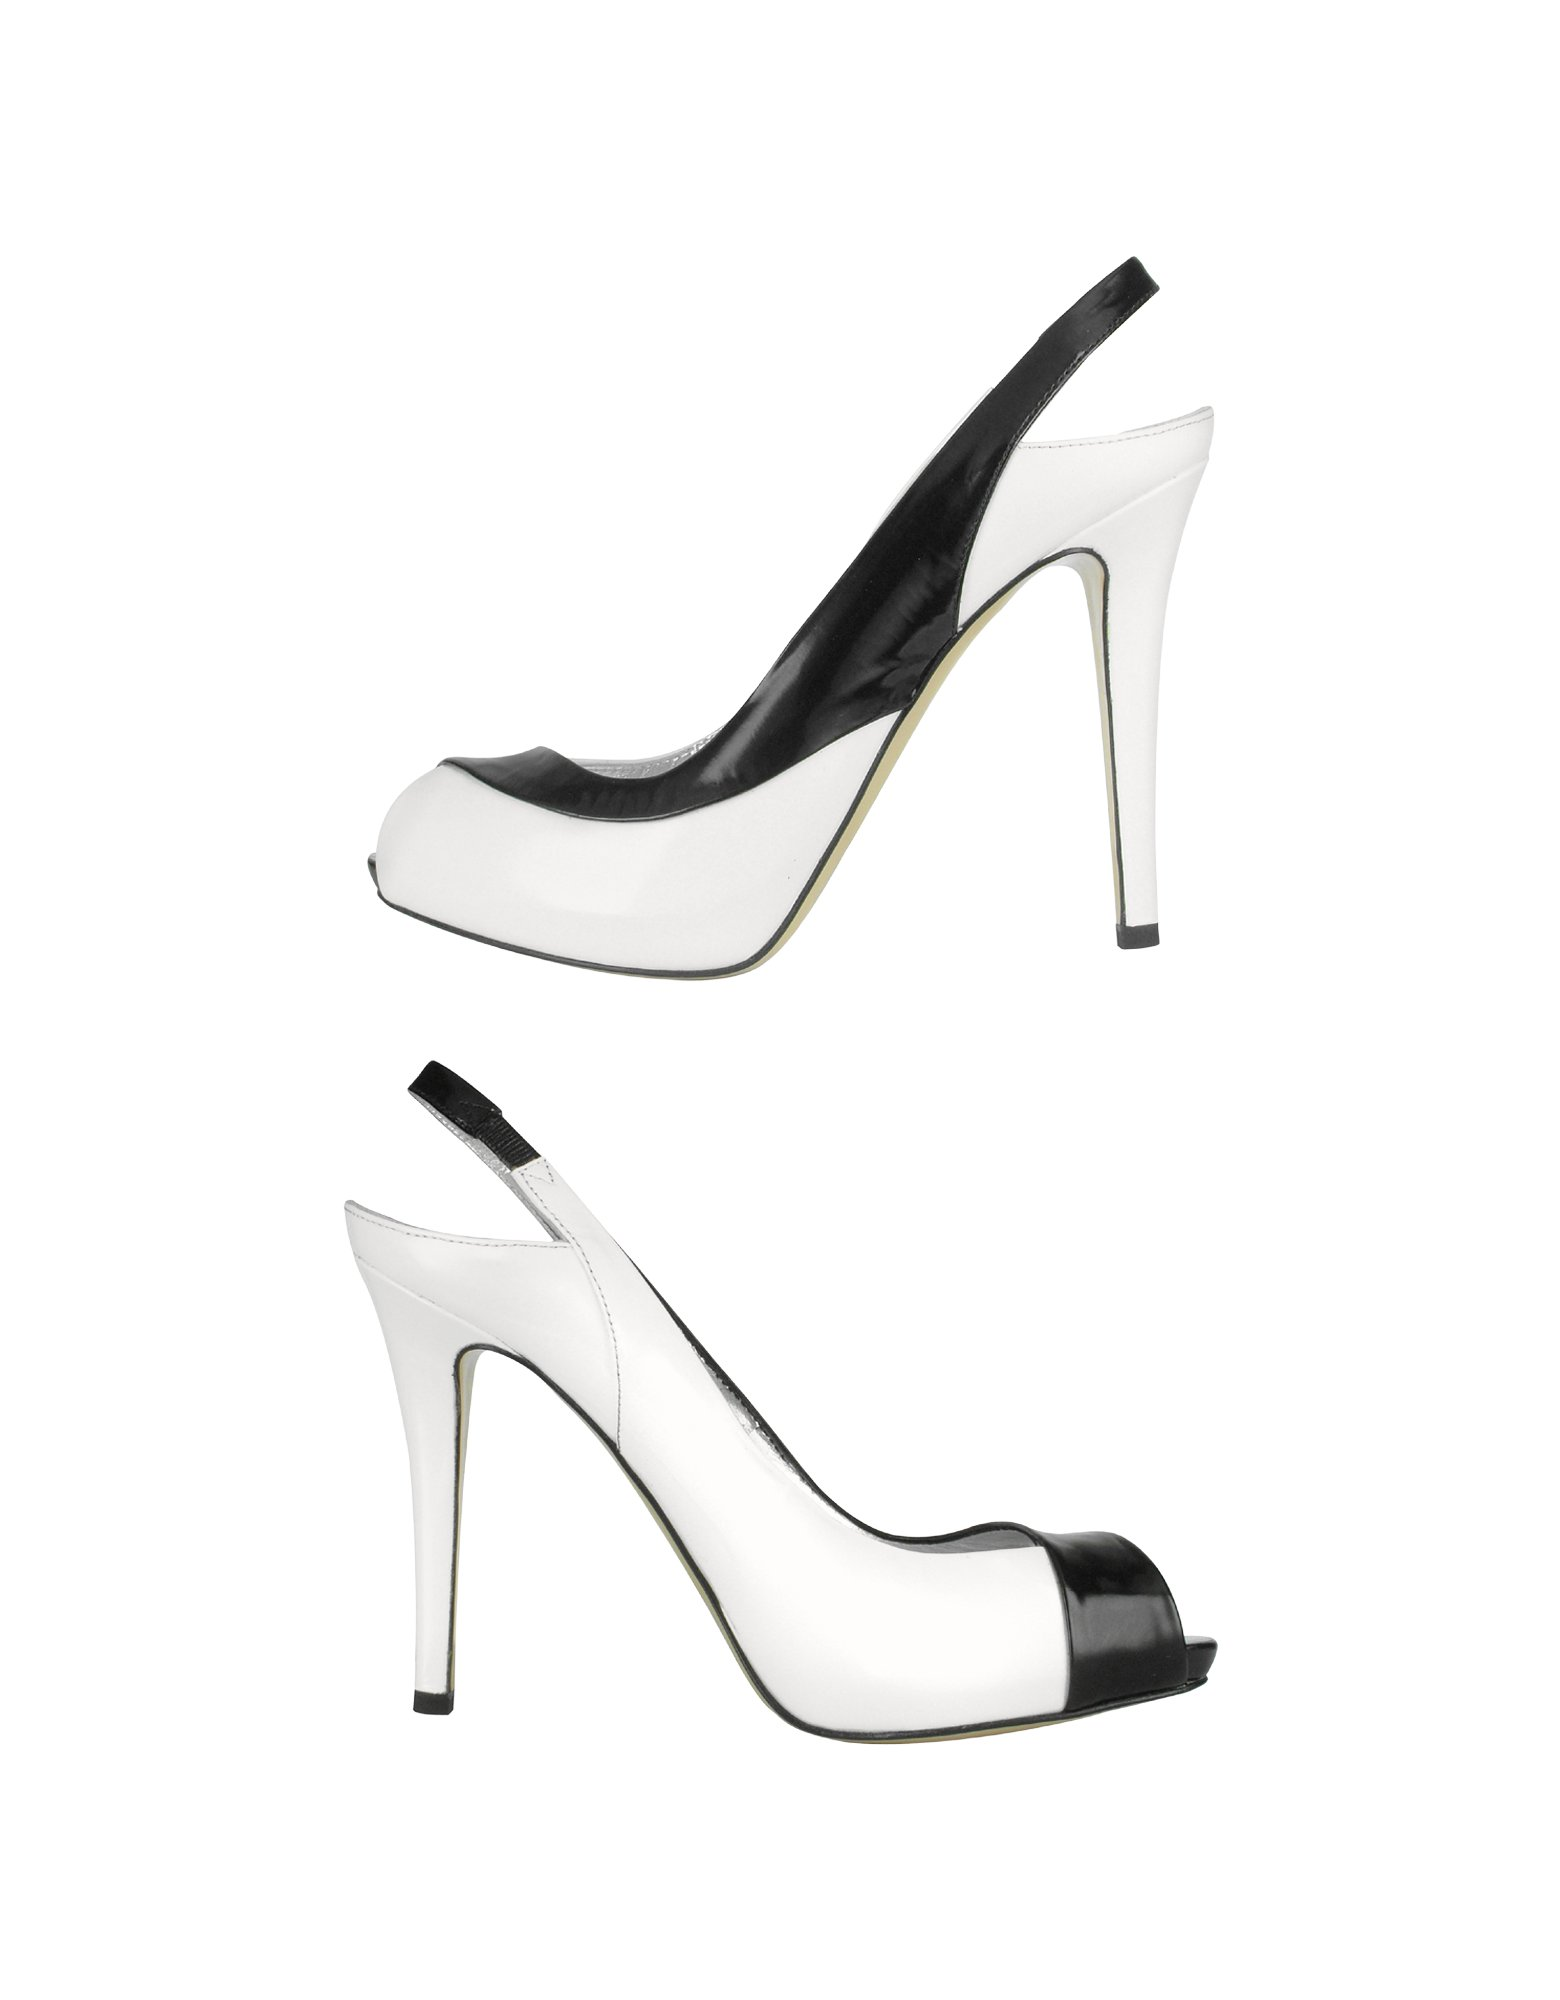 b2eab17abd Lyst - Mario Bologna Black and White Patent Leather Slingback Shoes ...